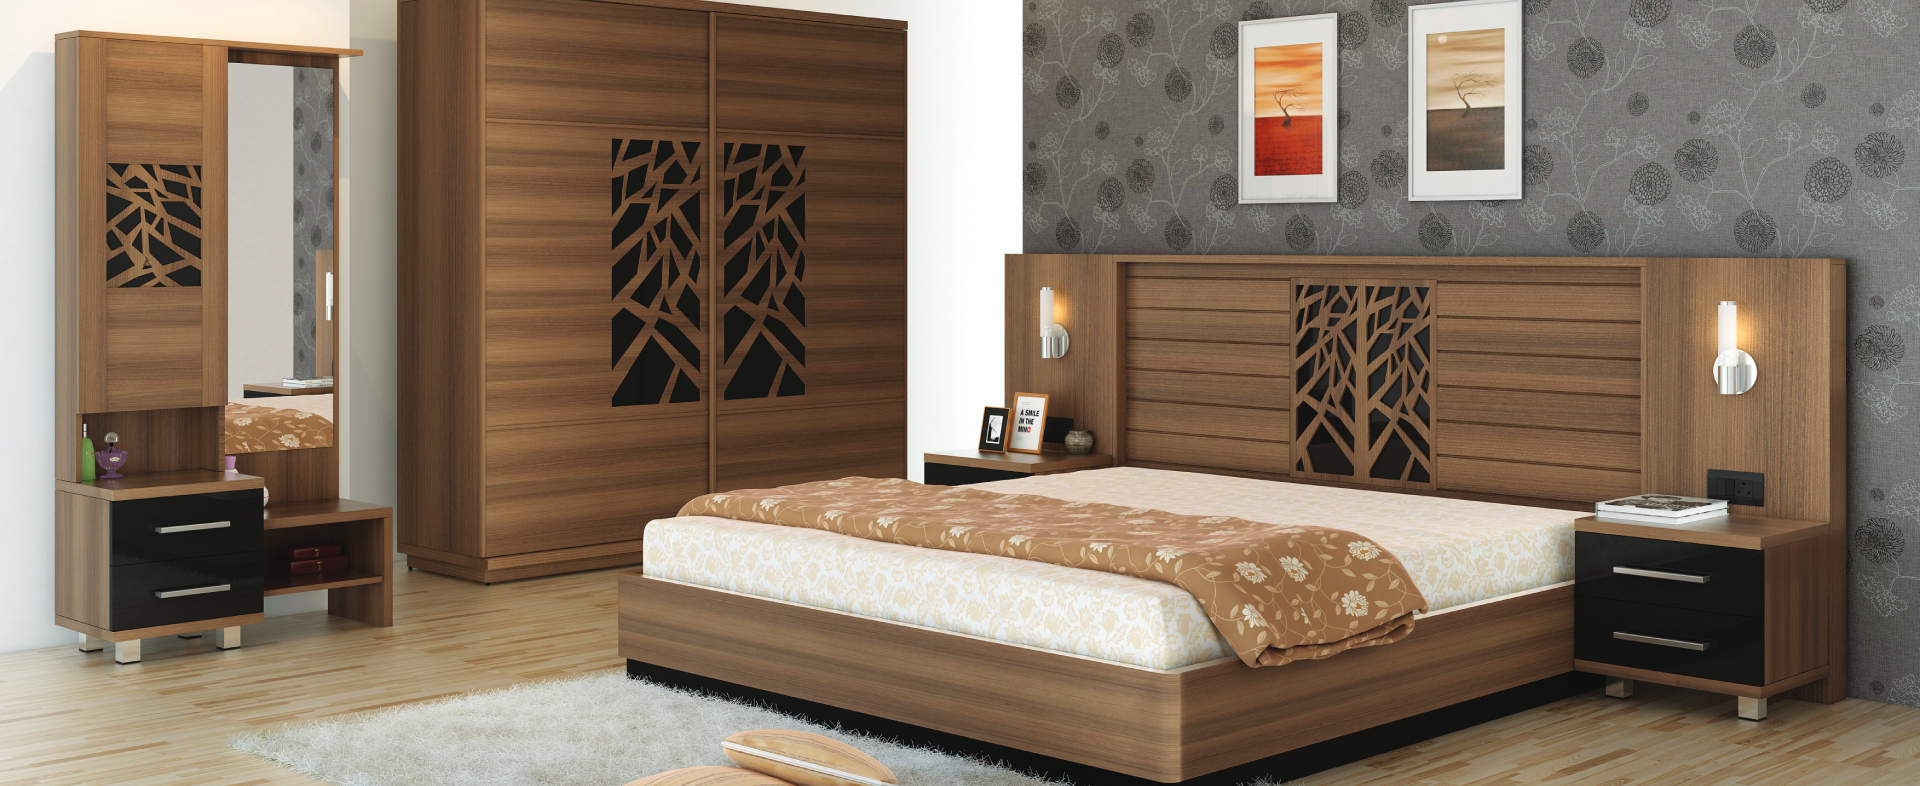 Bedroom Set Furniture Designs